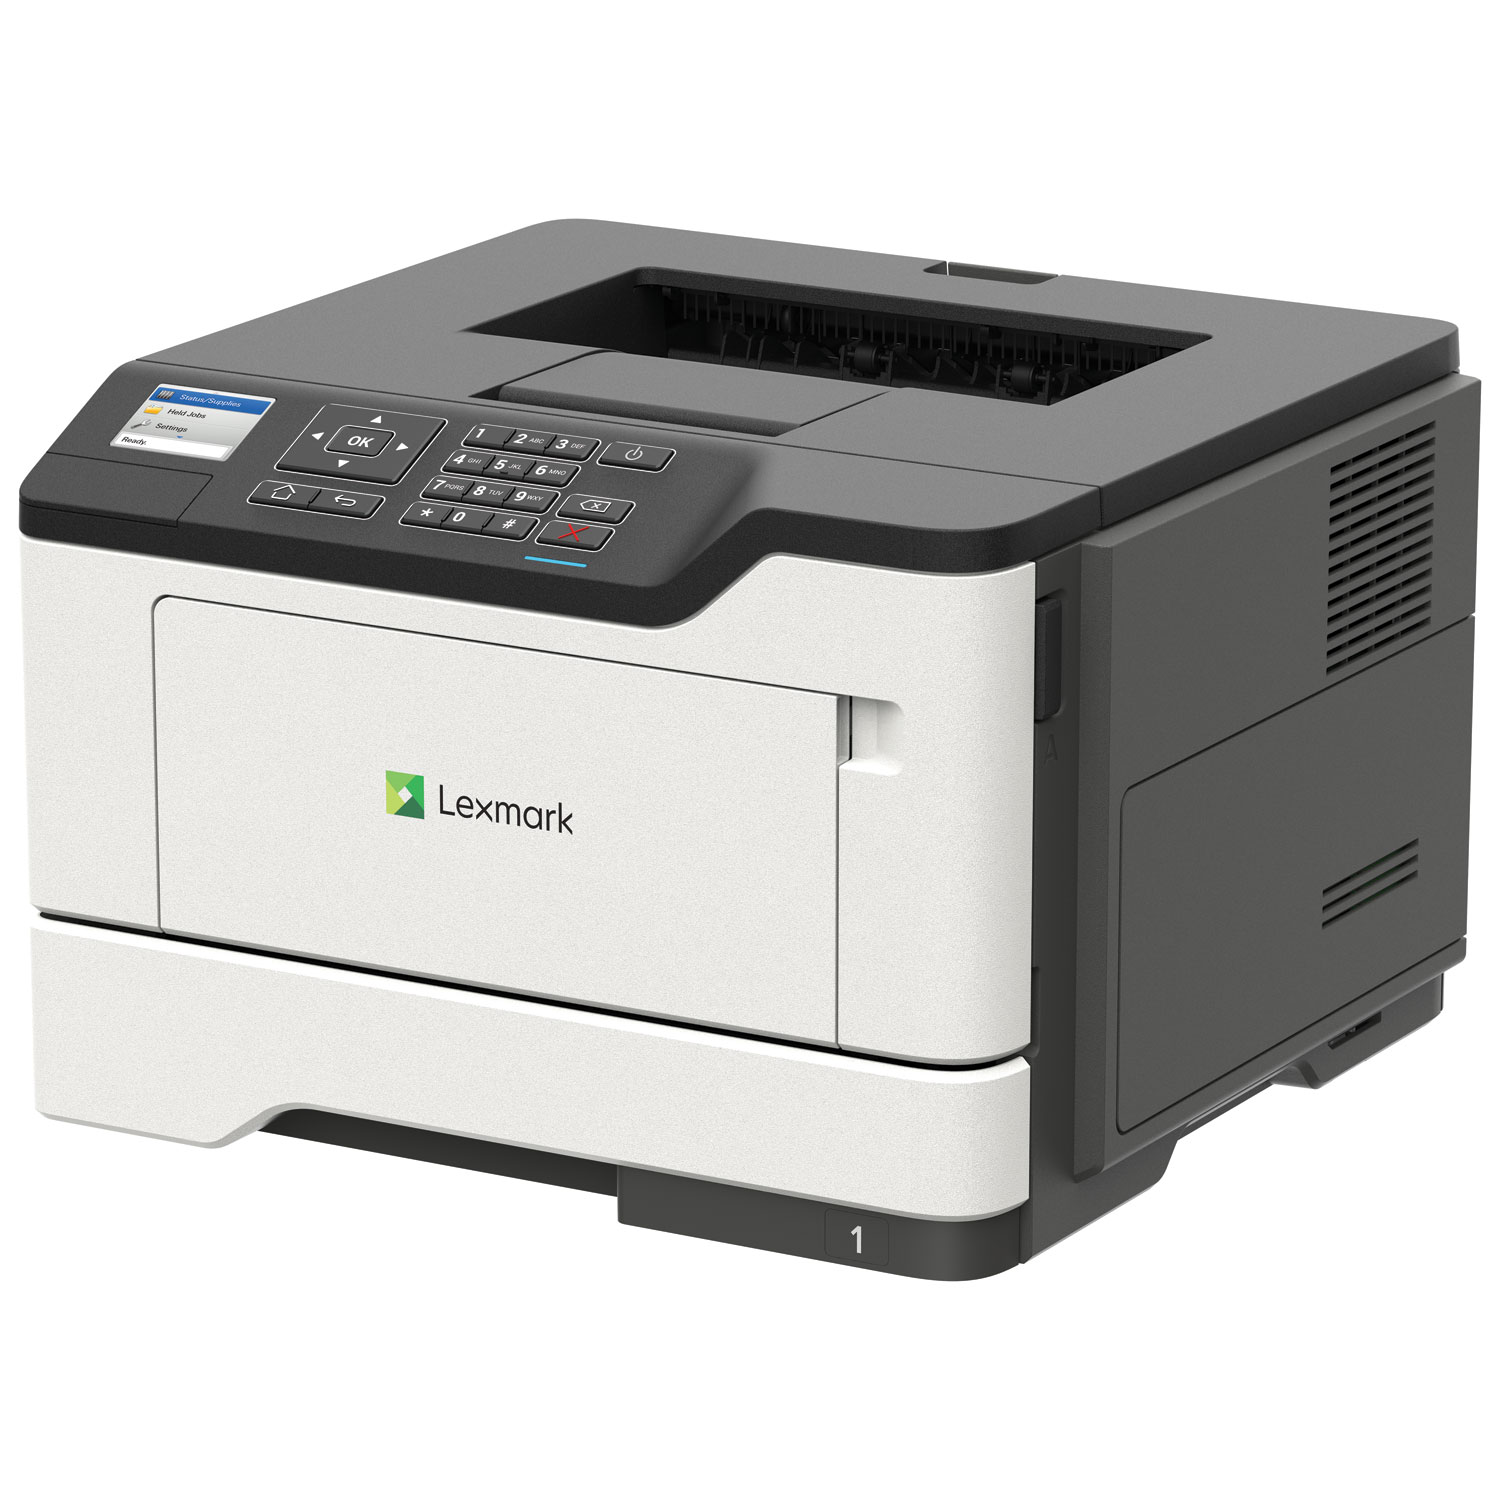 B2546dw Wireless Laser Printer